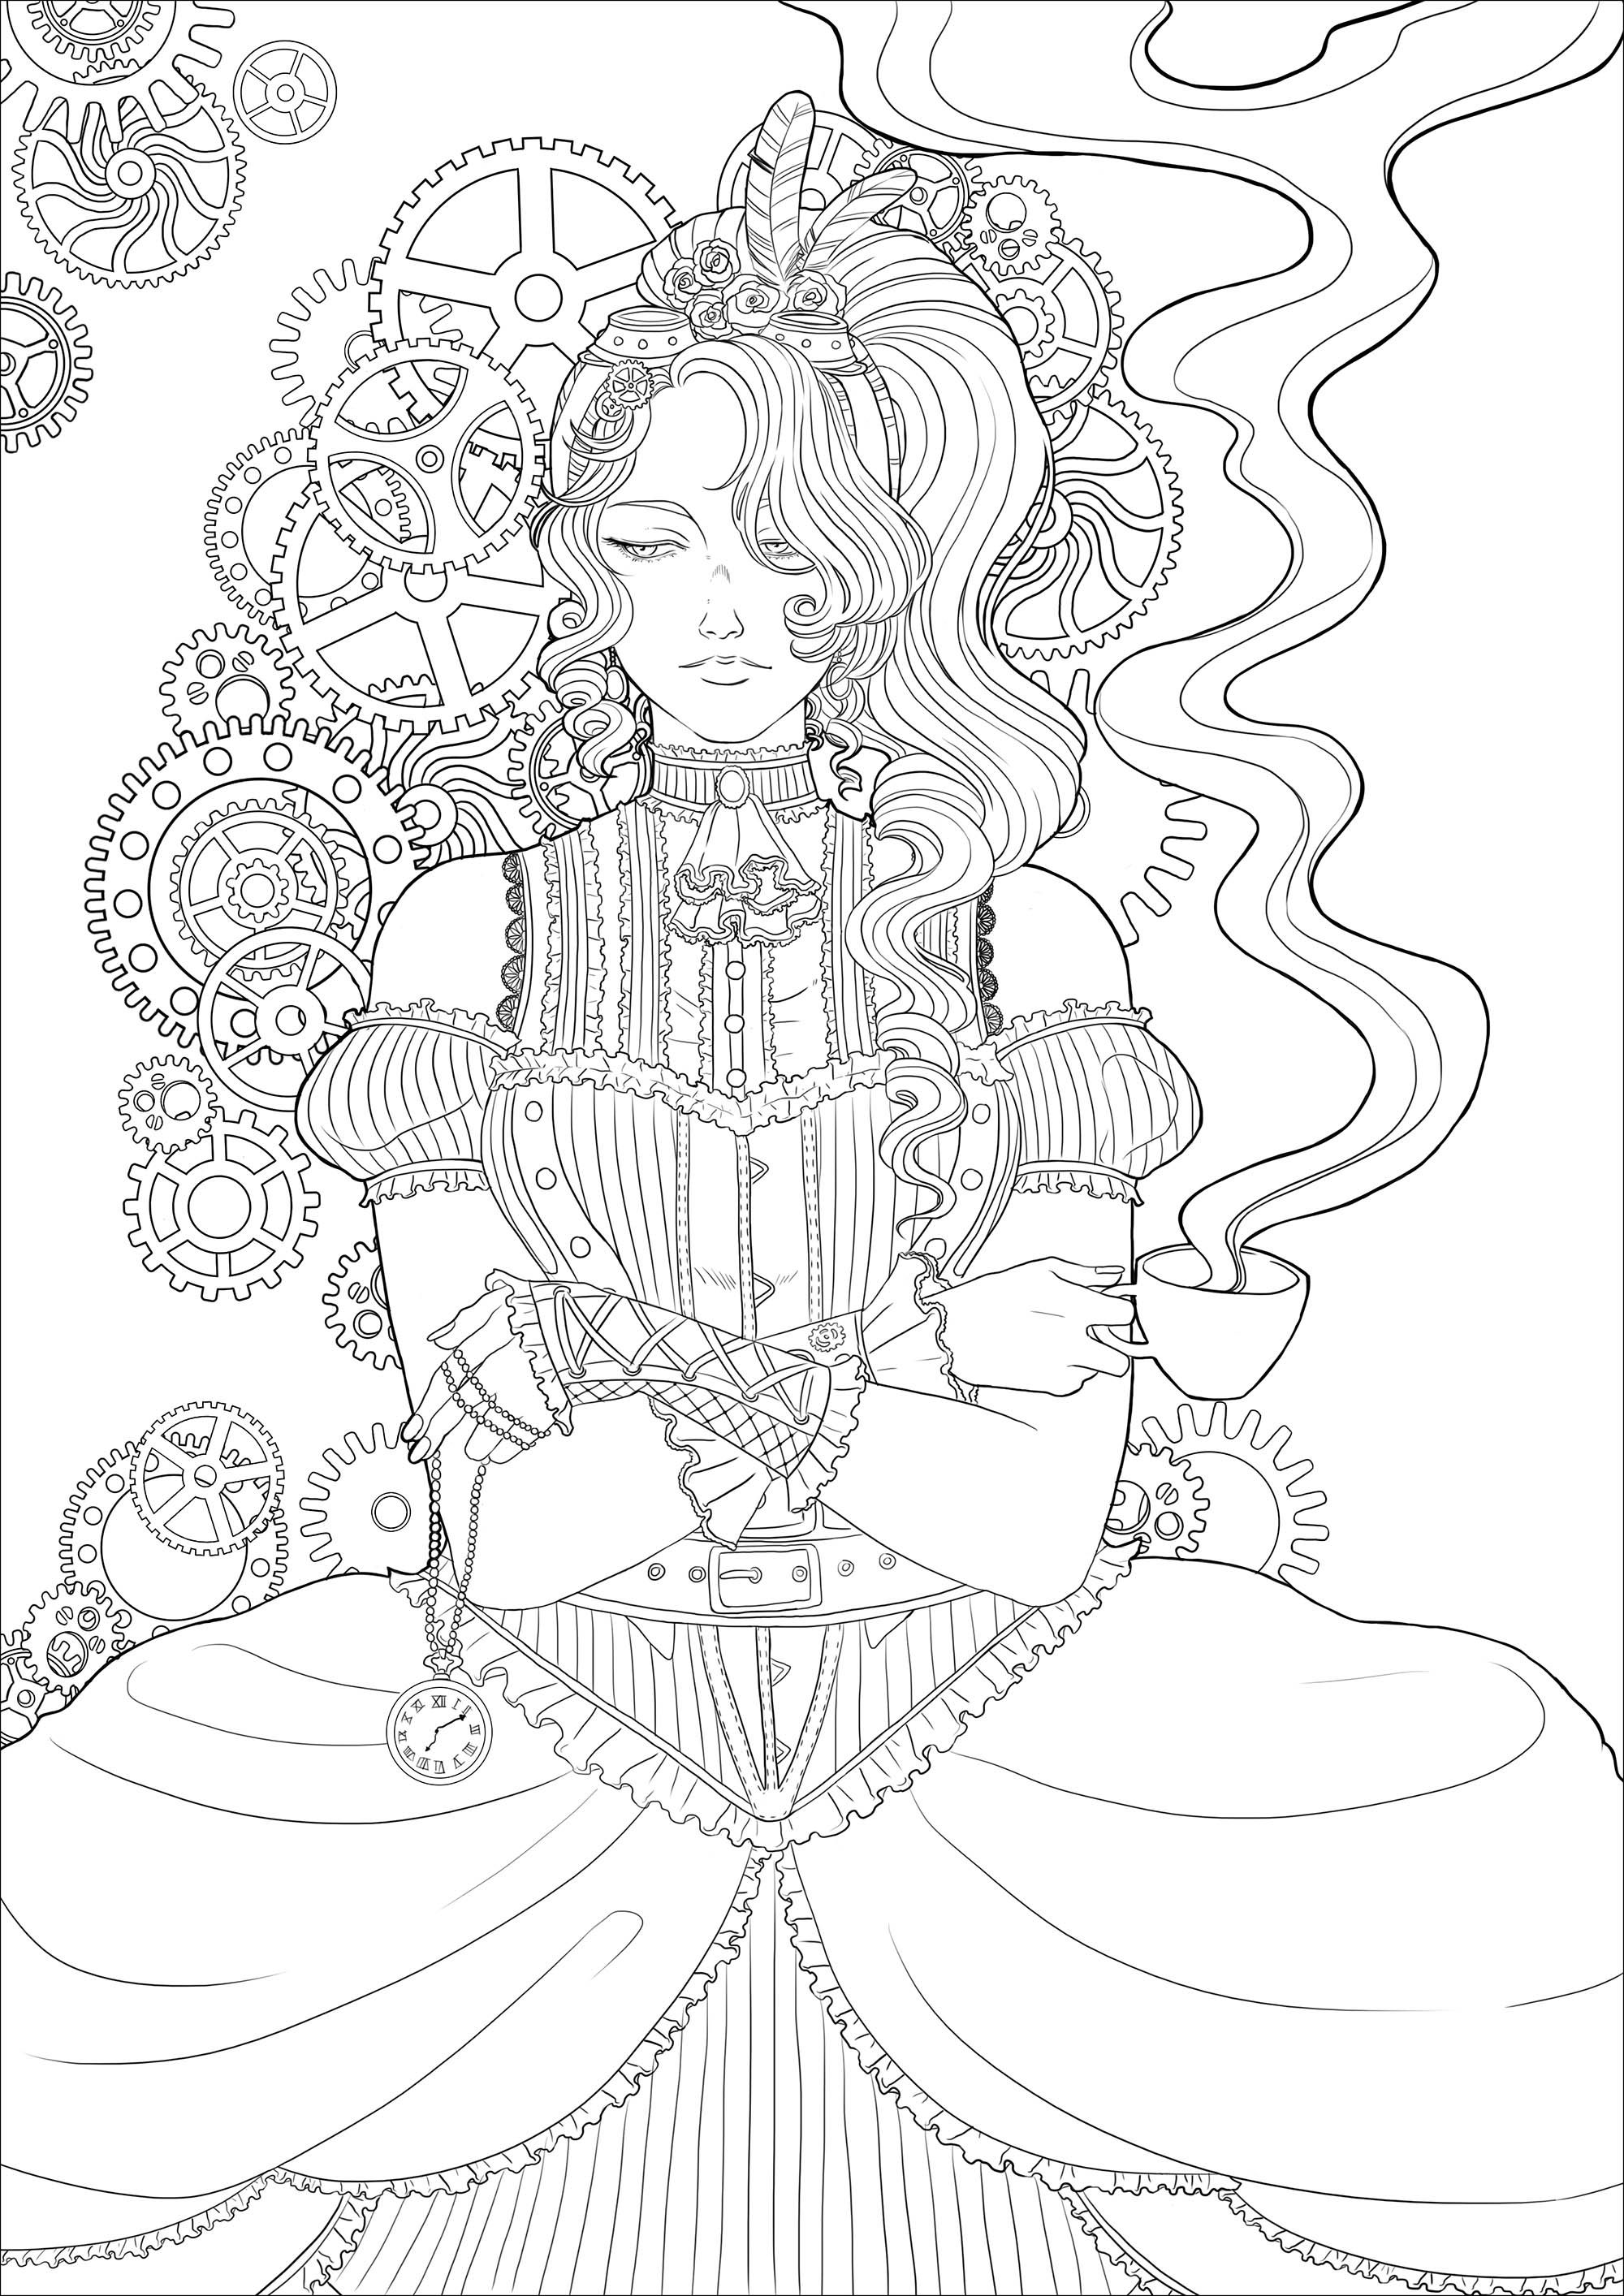 Coloring Page Of A Melancholy Young Woman With A Cup Of Tea All In A Victorian Environment And Steampunk Coloring Book Steampunk Coloring Fairy Coloring Pages